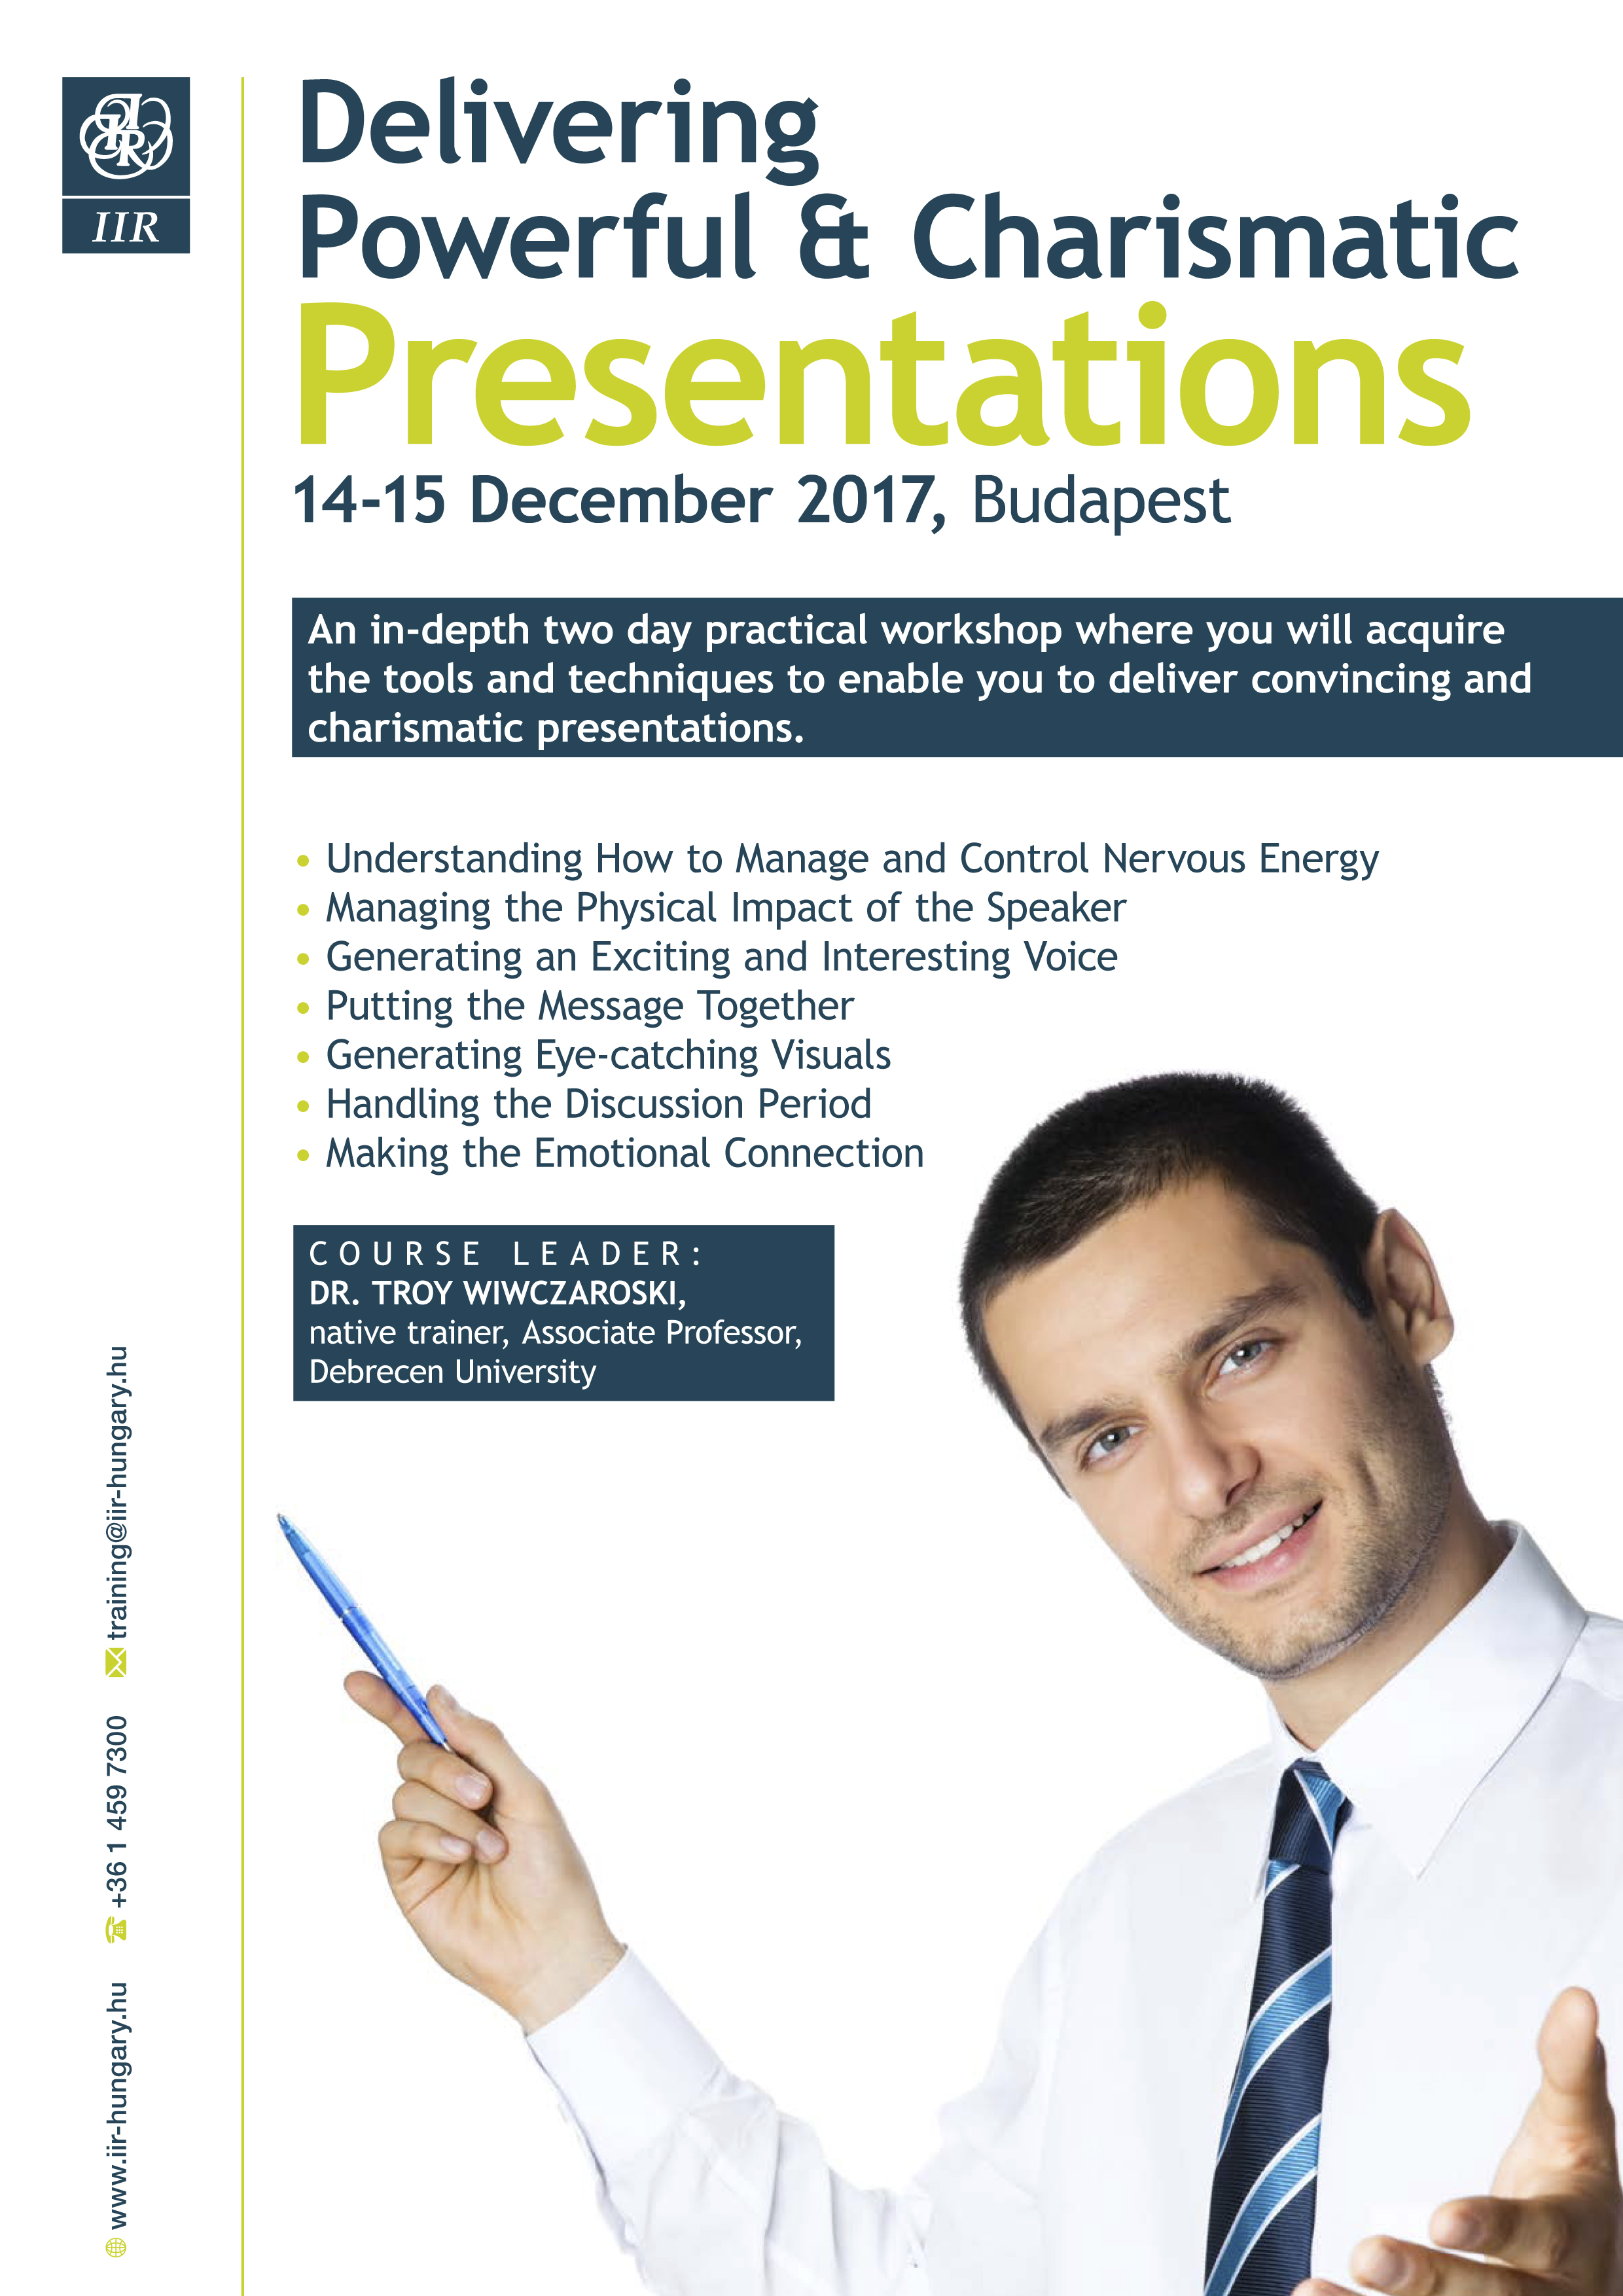 Delivering Powerful & Charismatic Presentations